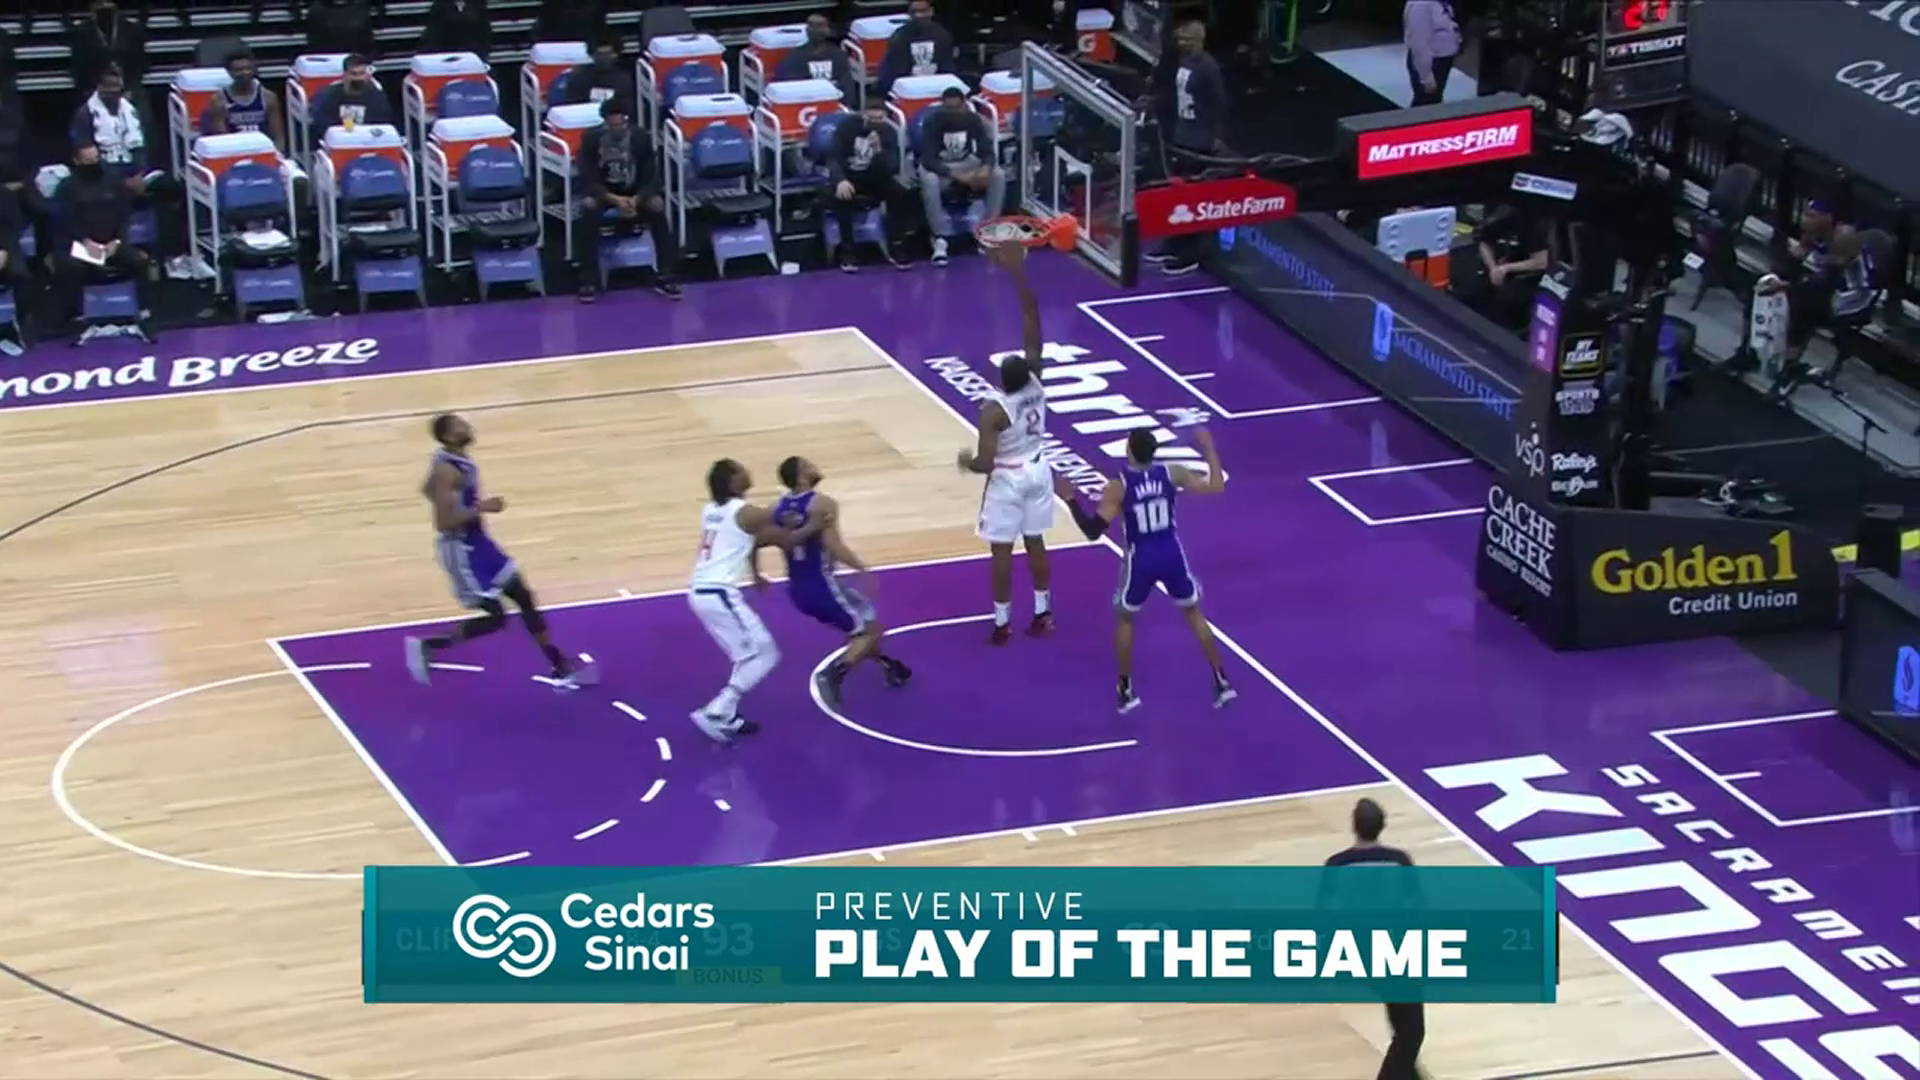 Cedars-Sinai Preventive Play of the Game | Clippers vs Kings (1.15.21)